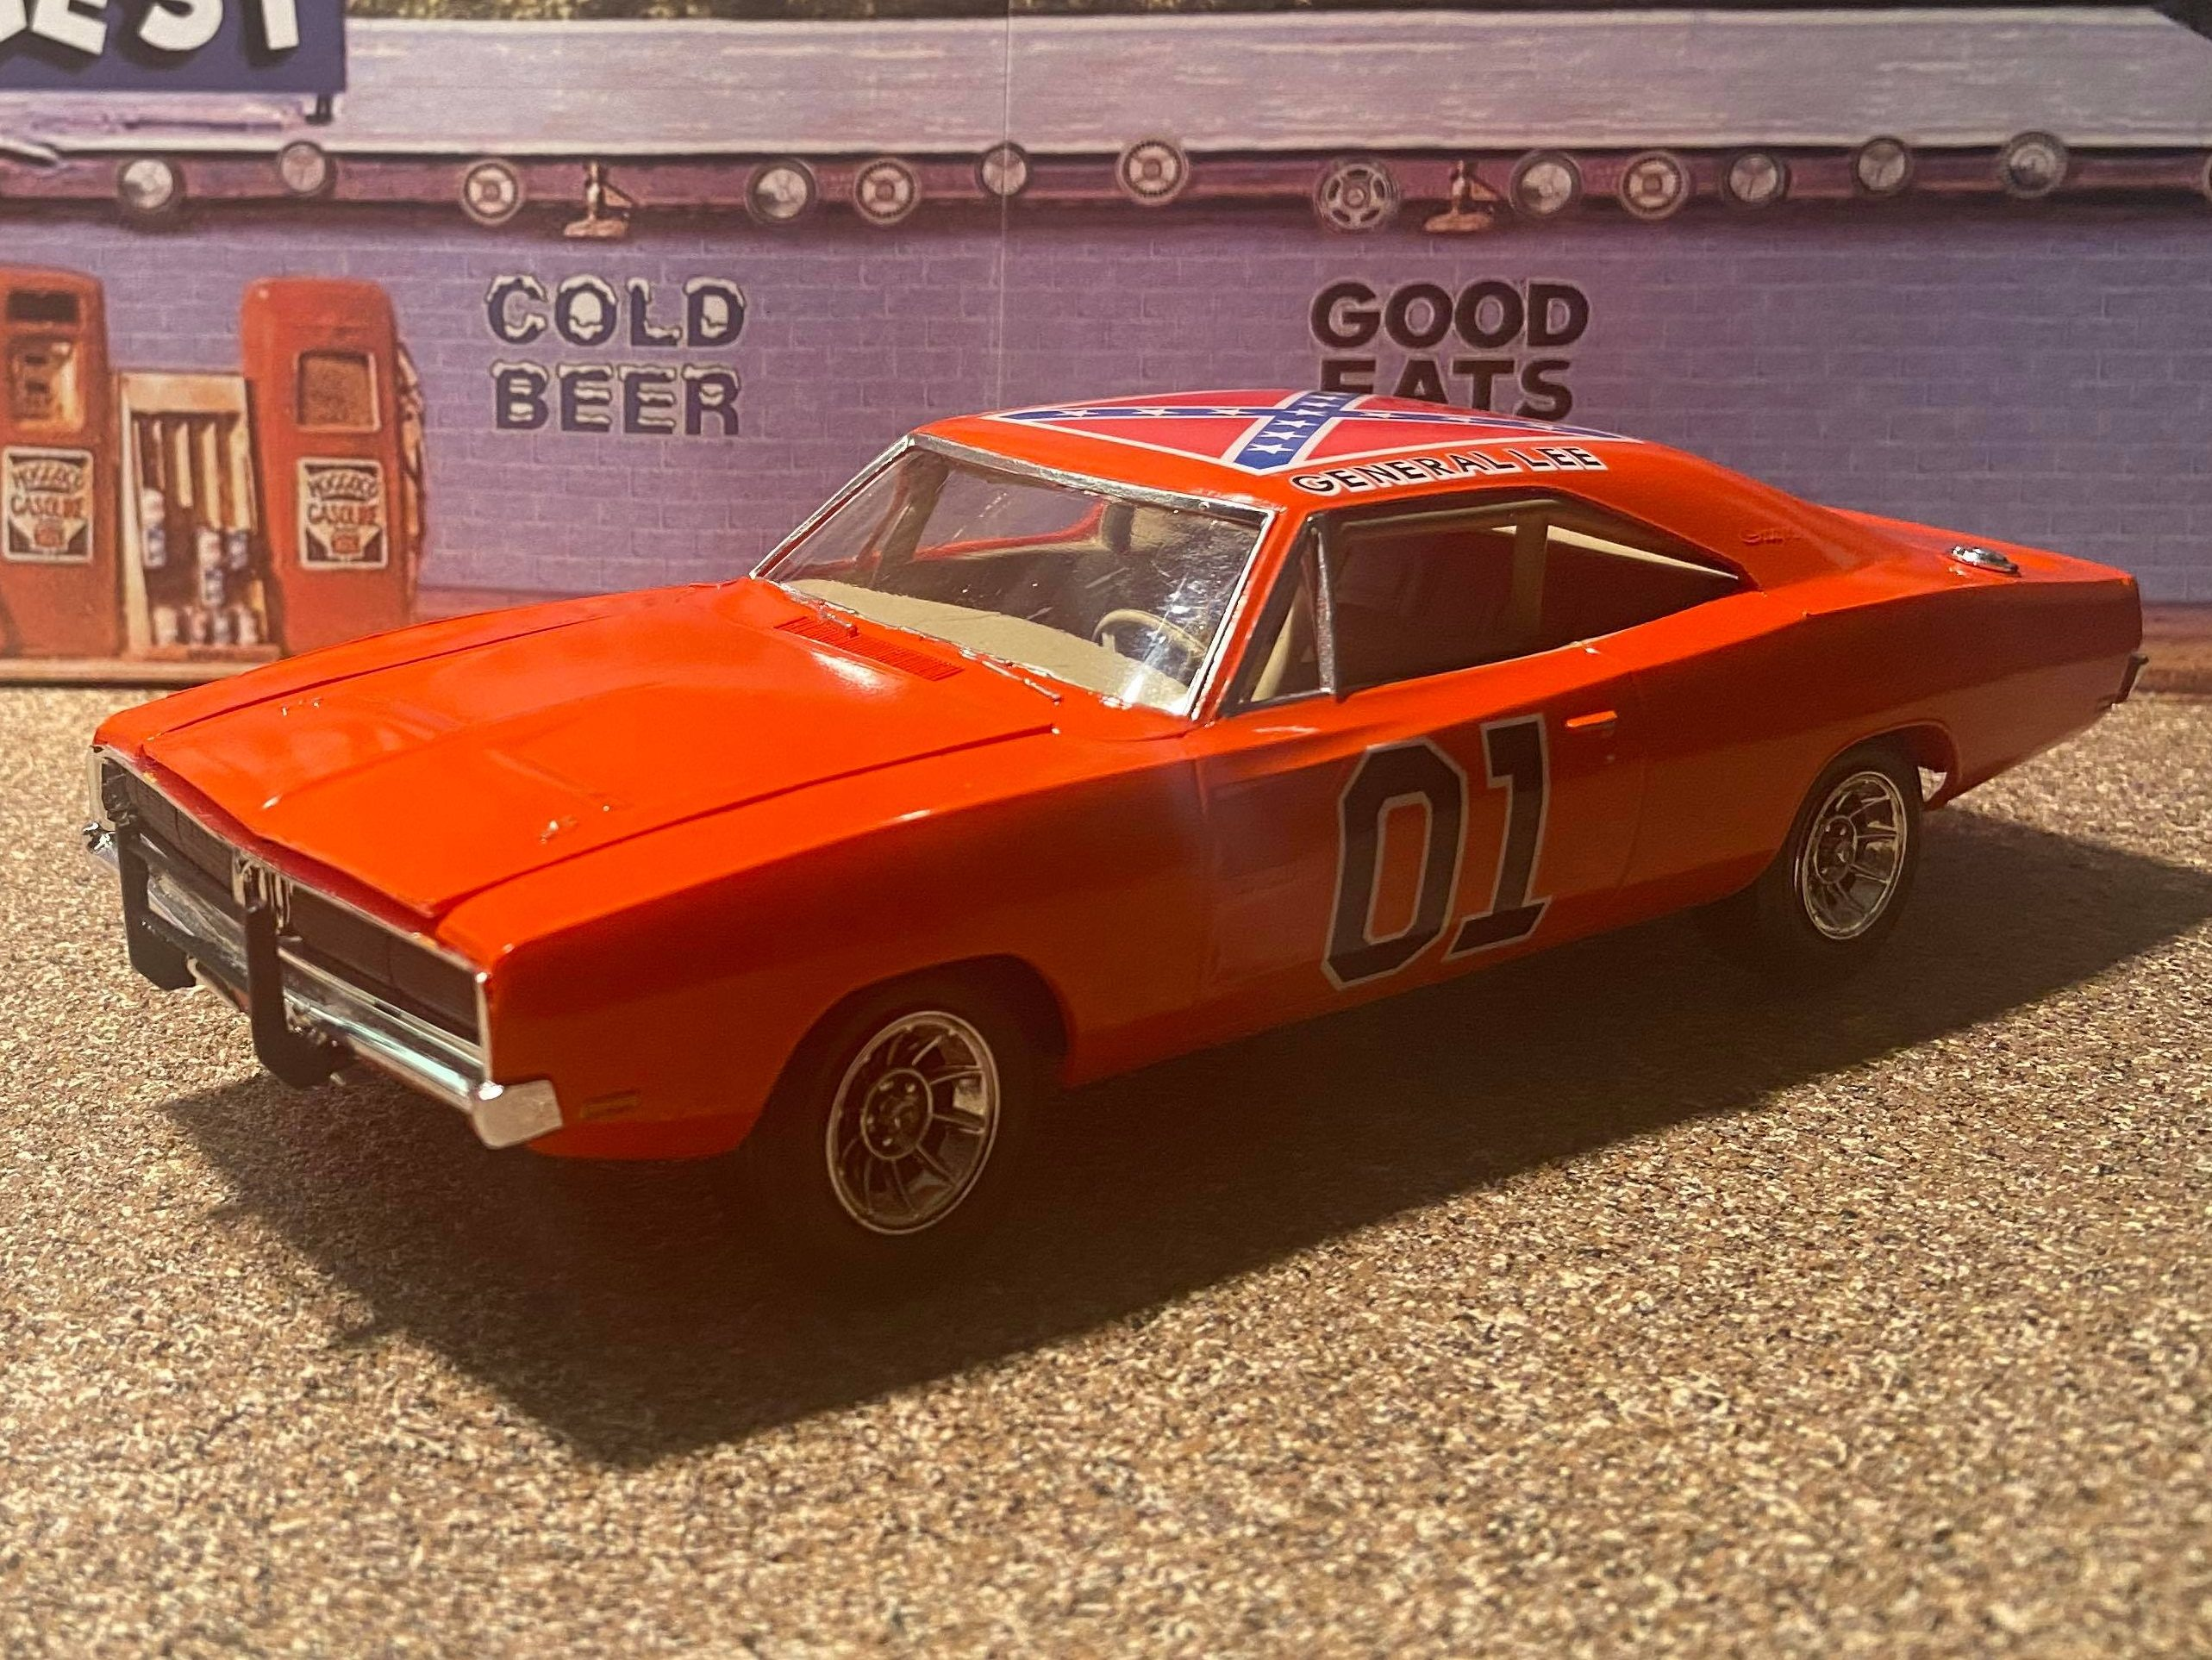 1969 Charger from The Dukes of Hazzard